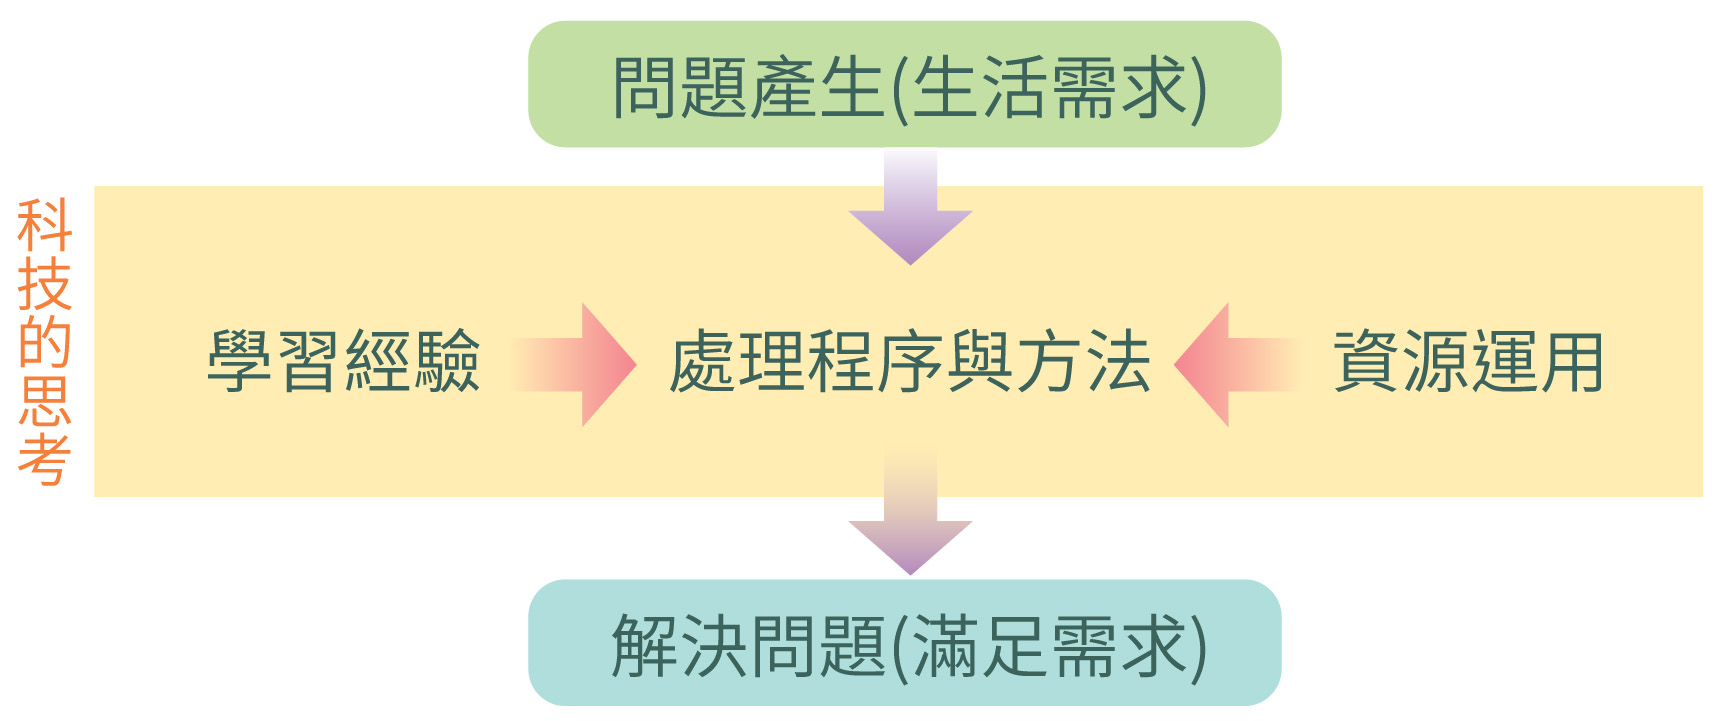 """<p><span style=""""font-size:24px;""""><strong>科技思考的程序與方法</strong></span></p>"""